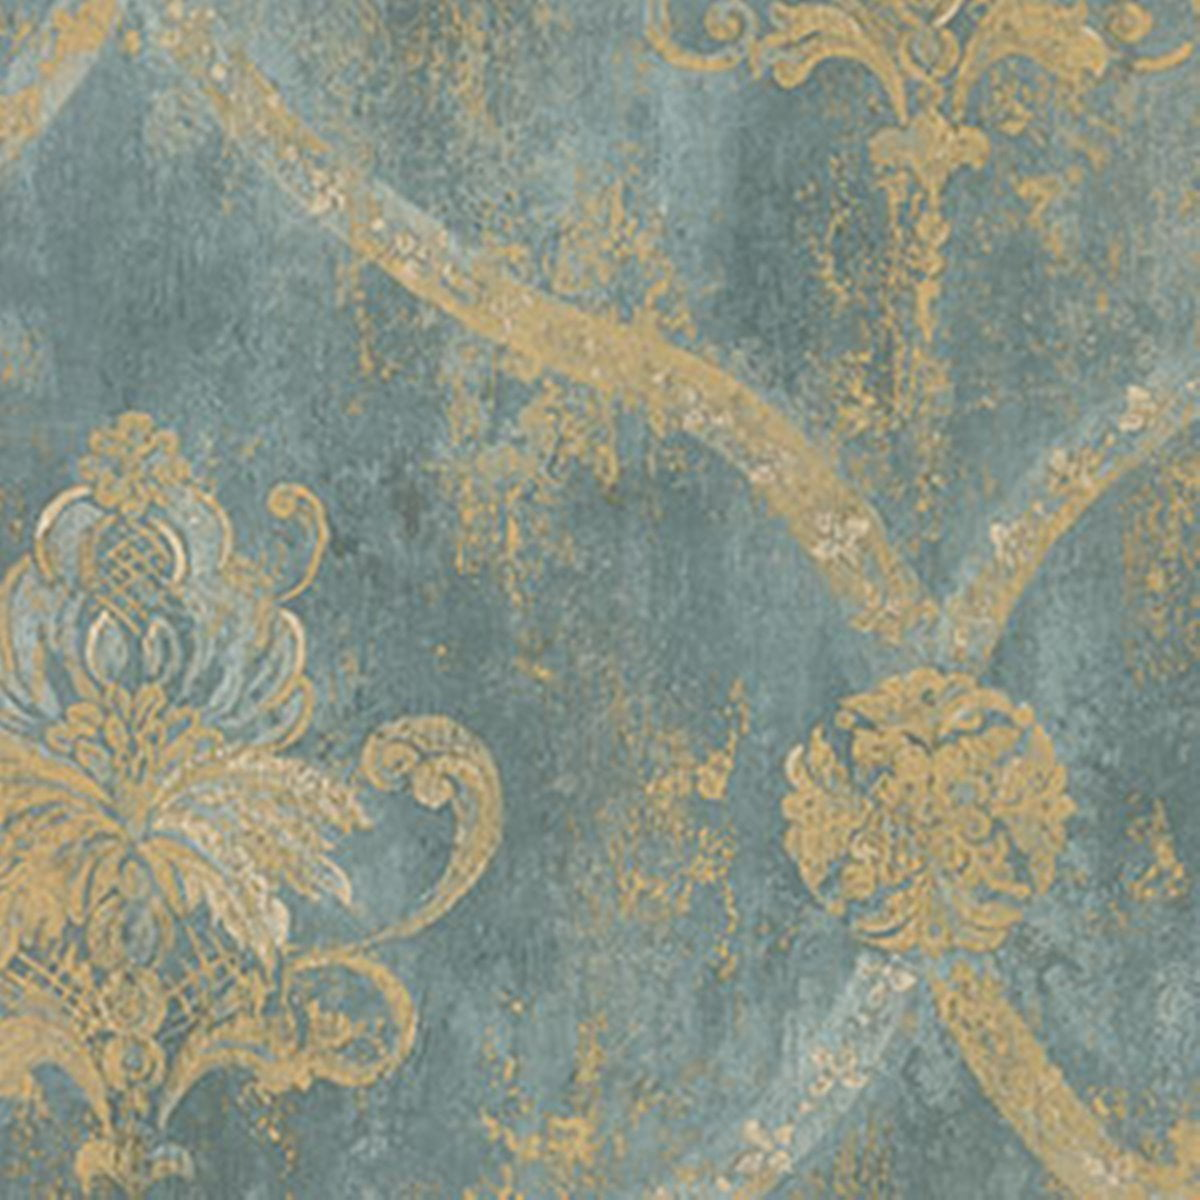 Wallpaper French Faux Aqua Blue Large Damask With Gold By First Quality New Pre Pasted Vinyl Norwall From USA